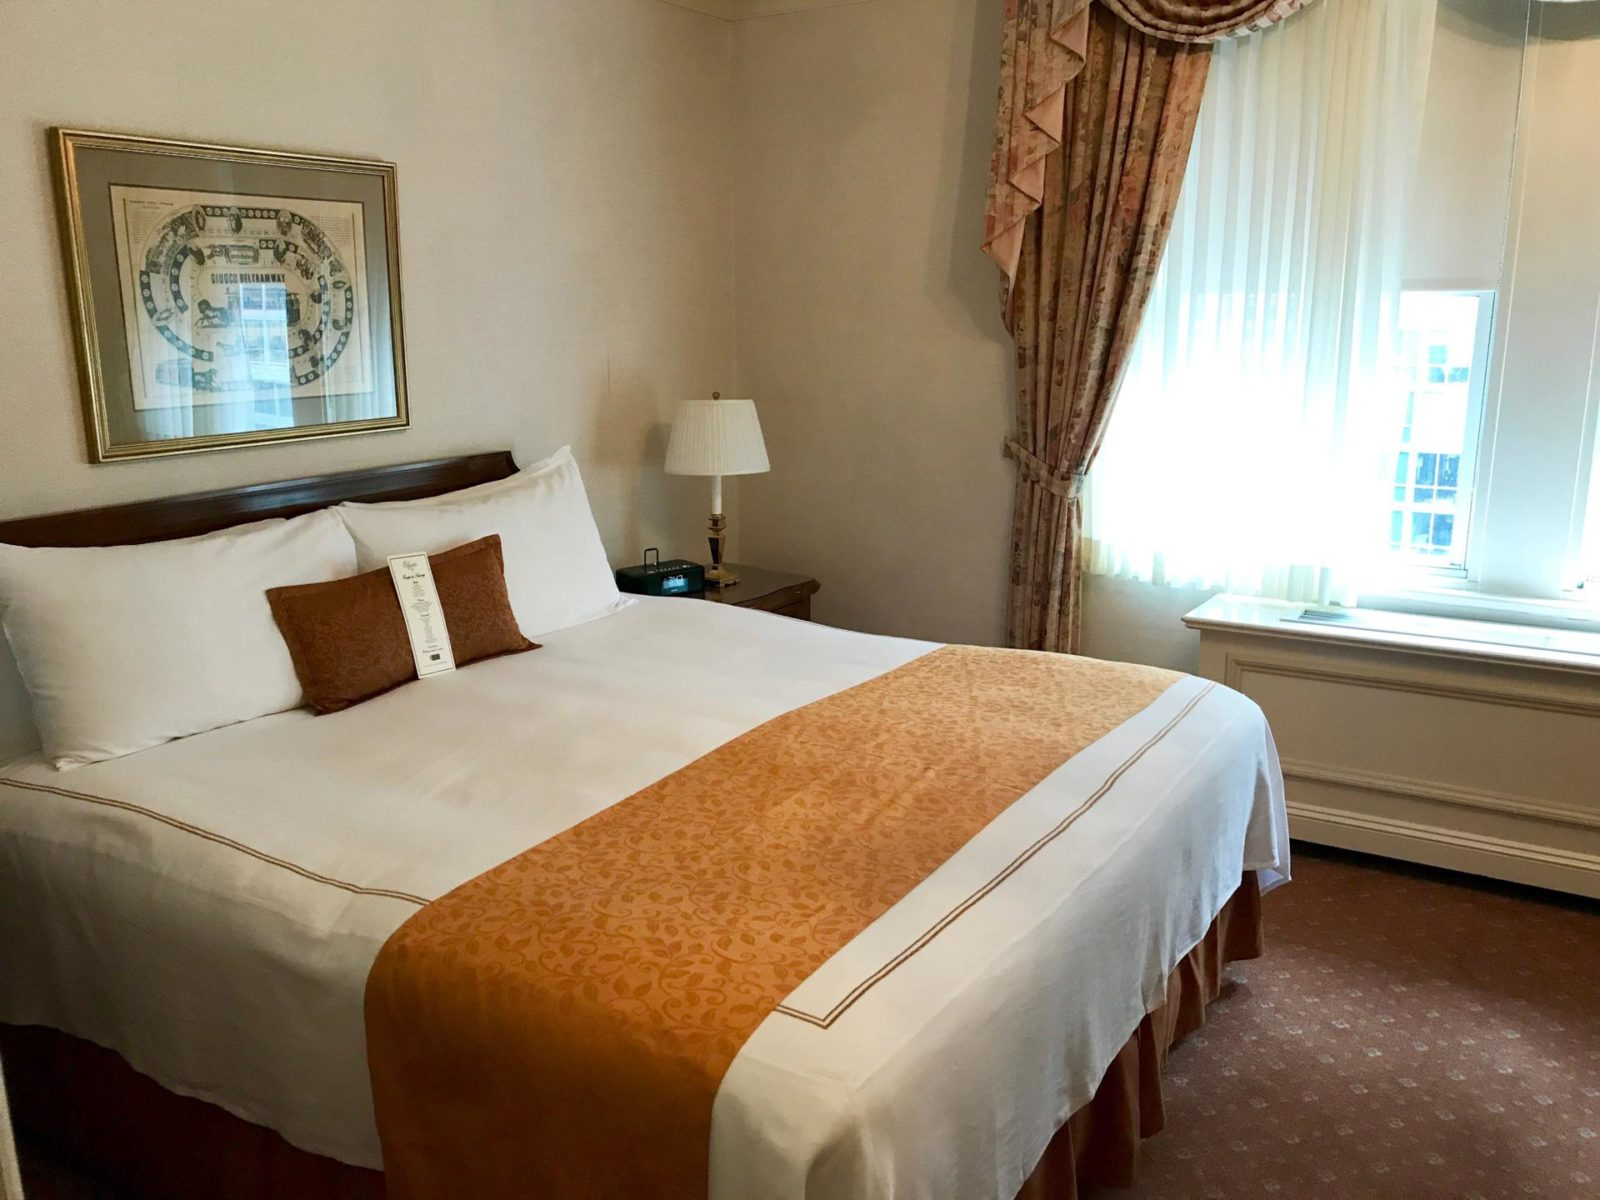 A stay at NYC's Hotel Elysee